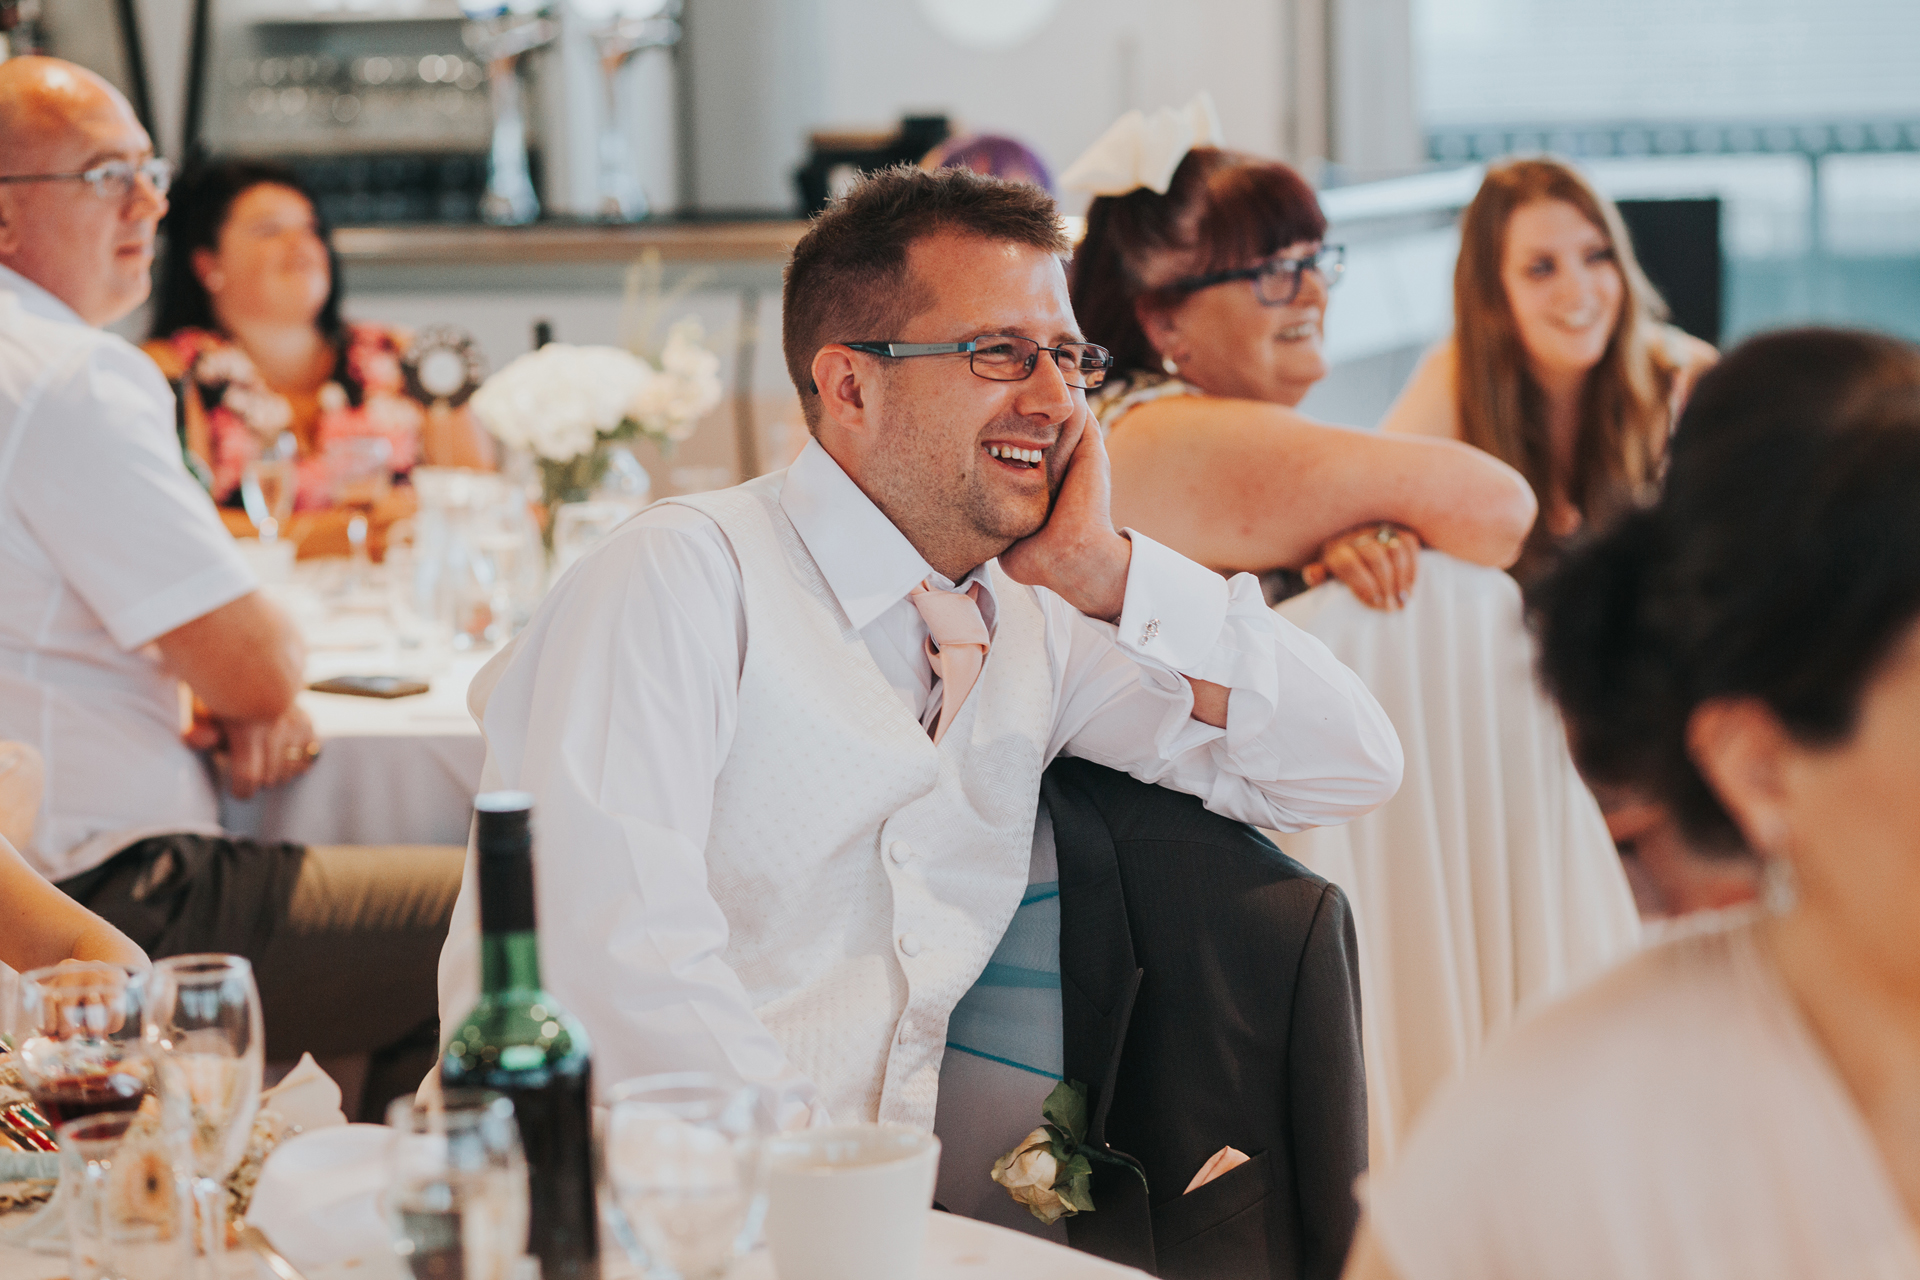 Best Man laughing at Groom's speech.